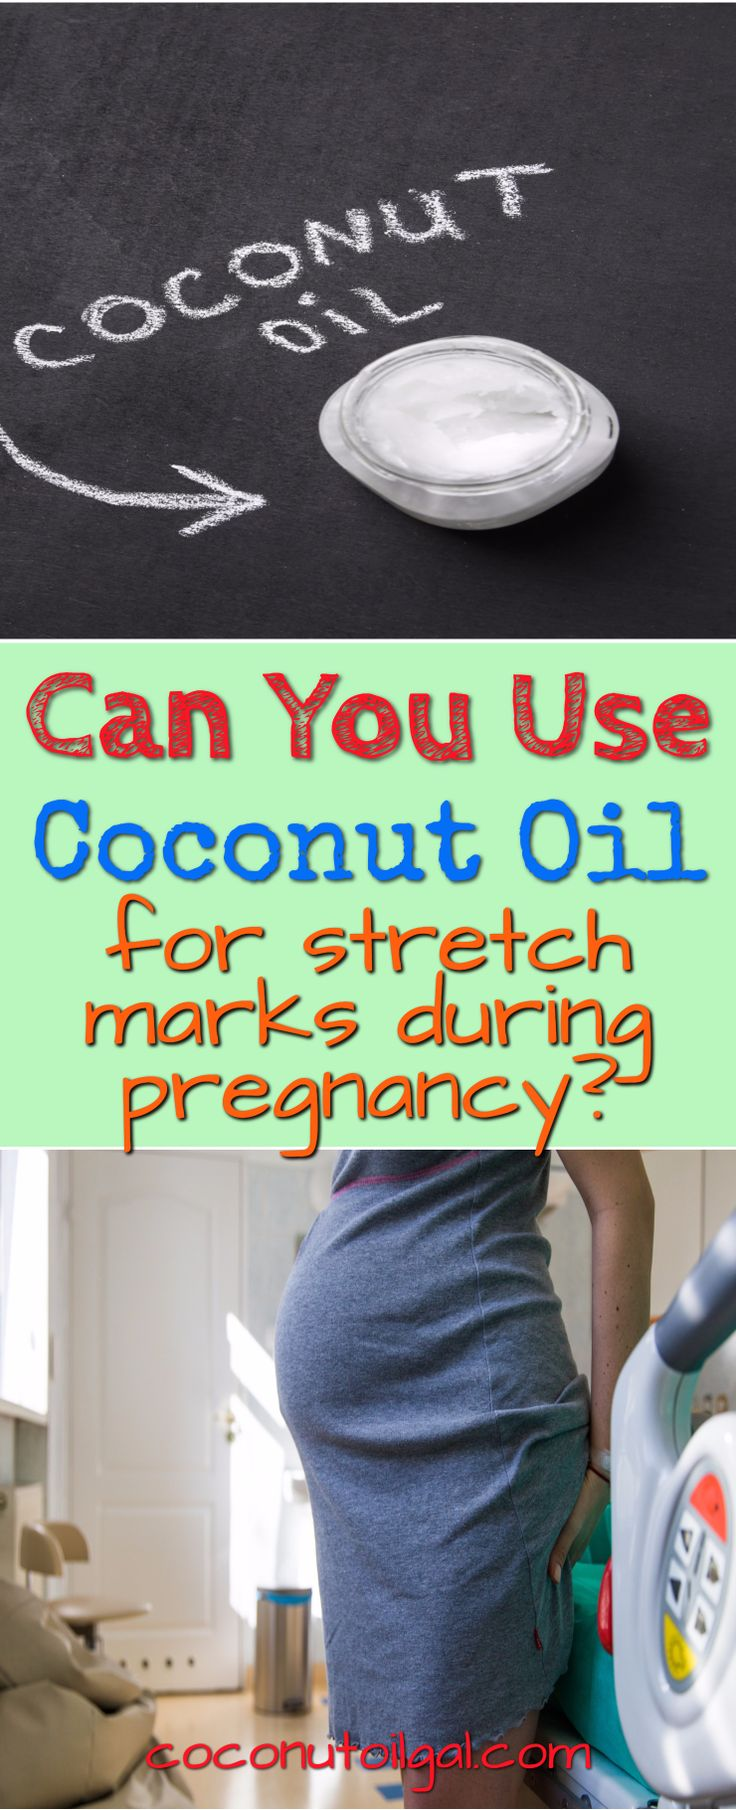 Wondering if using coconut oil to prevent stretch marks during pregnancy really works? How and why you should use coconut oil during pregnancy for your stretch marks.